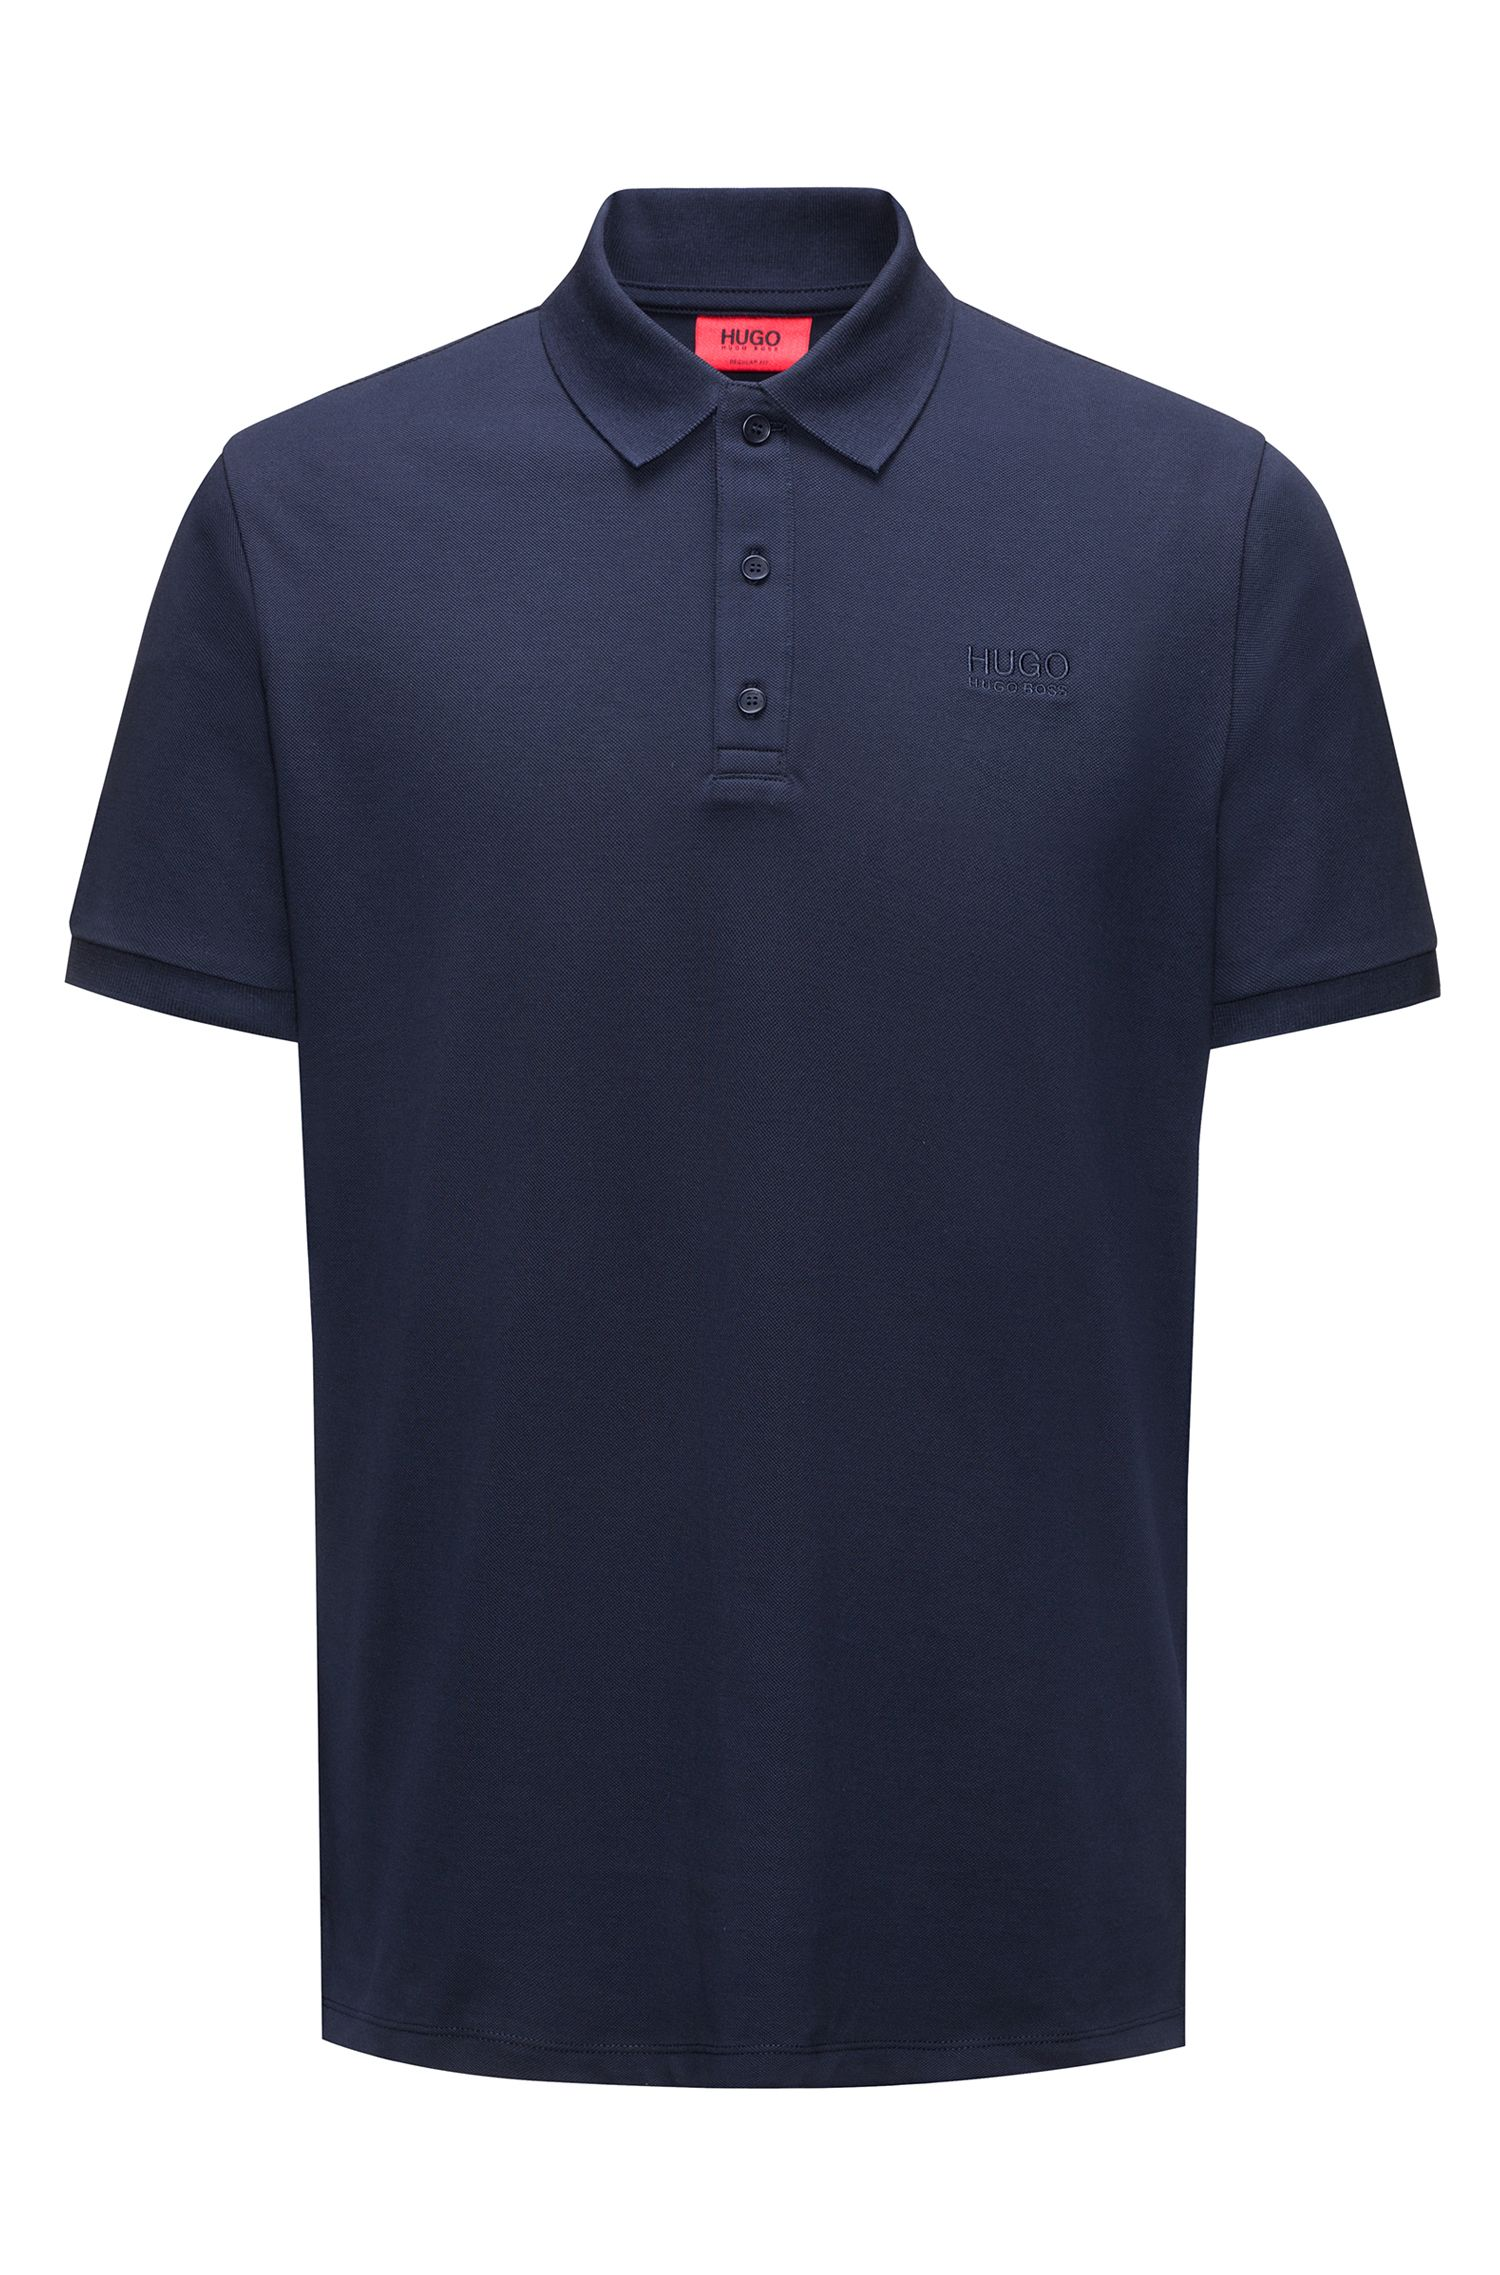 Regular-Fit Poloshirt aus softer Baumwolle